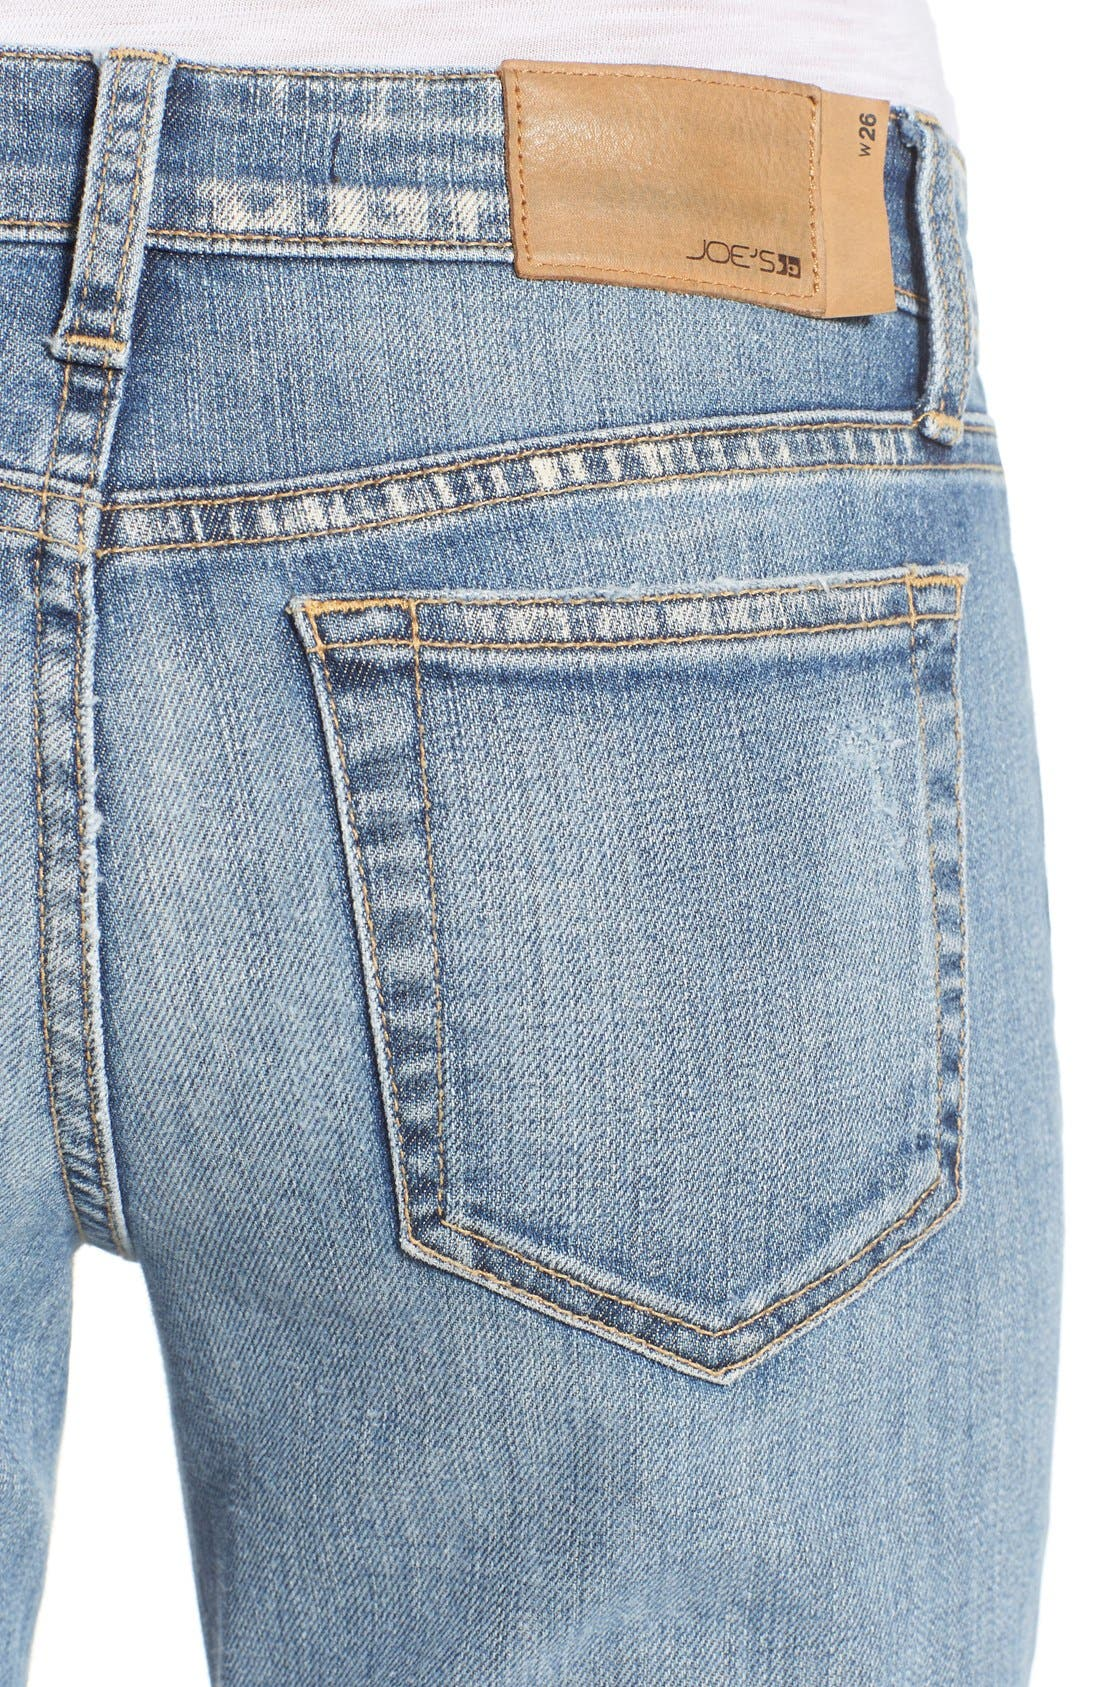 'Collector's - Ex Lover' Straight Leg Jeans,                             Alternate thumbnail 5, color,                             Bev